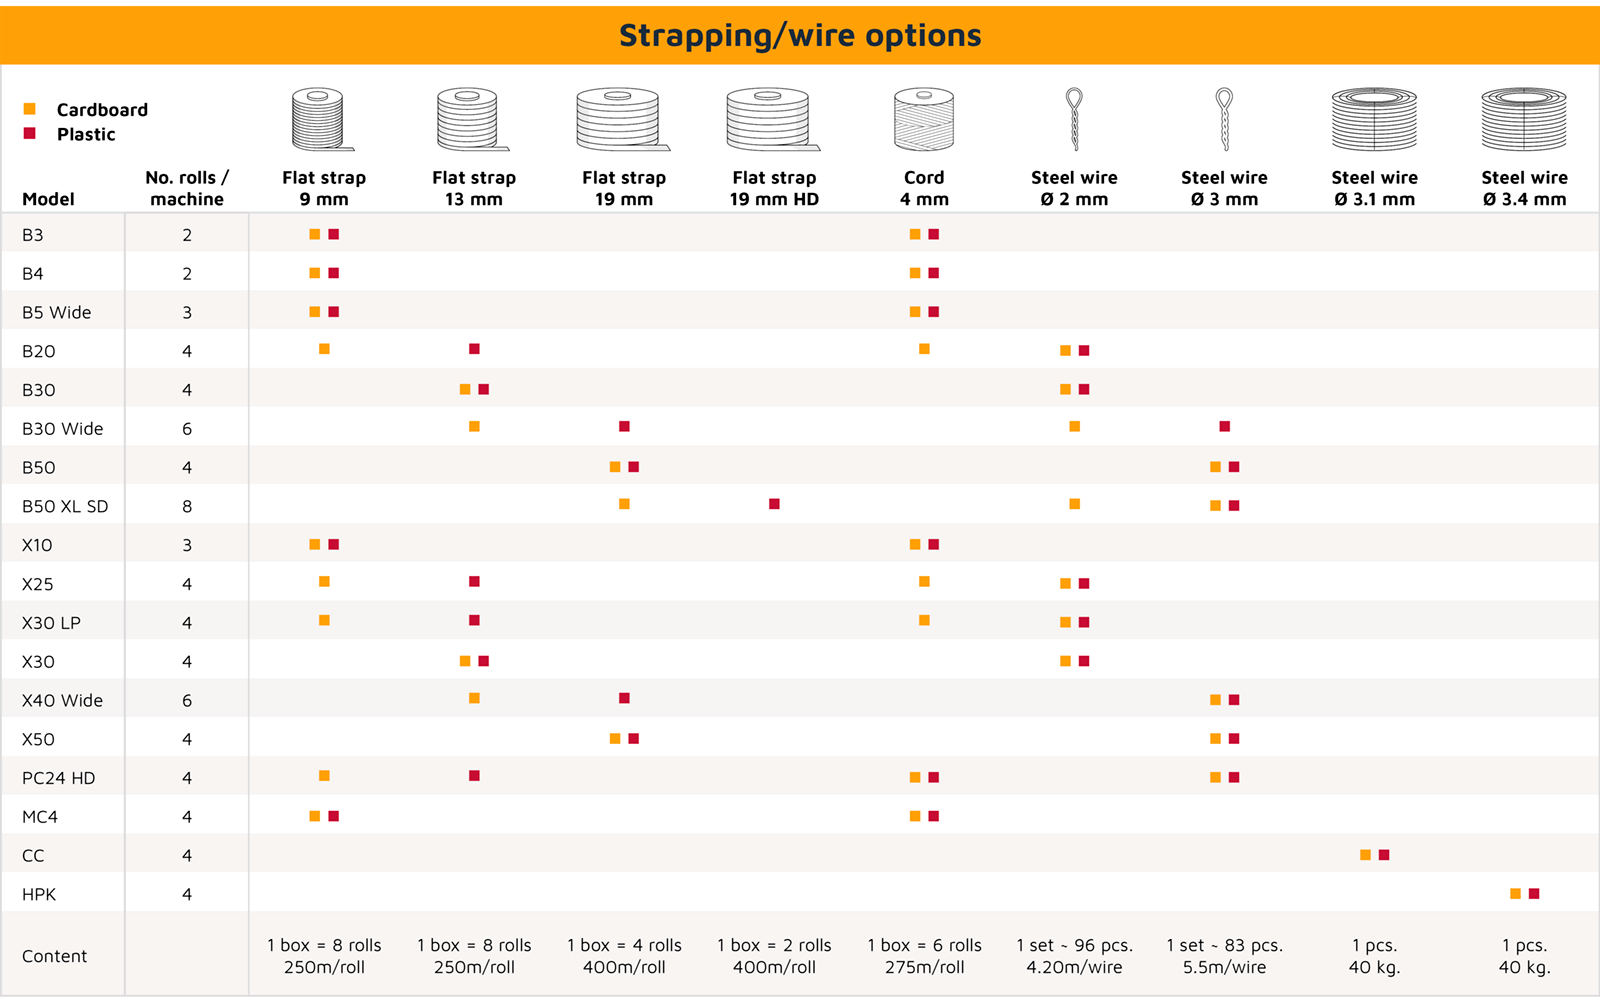 Overview of different types of strapping and wires